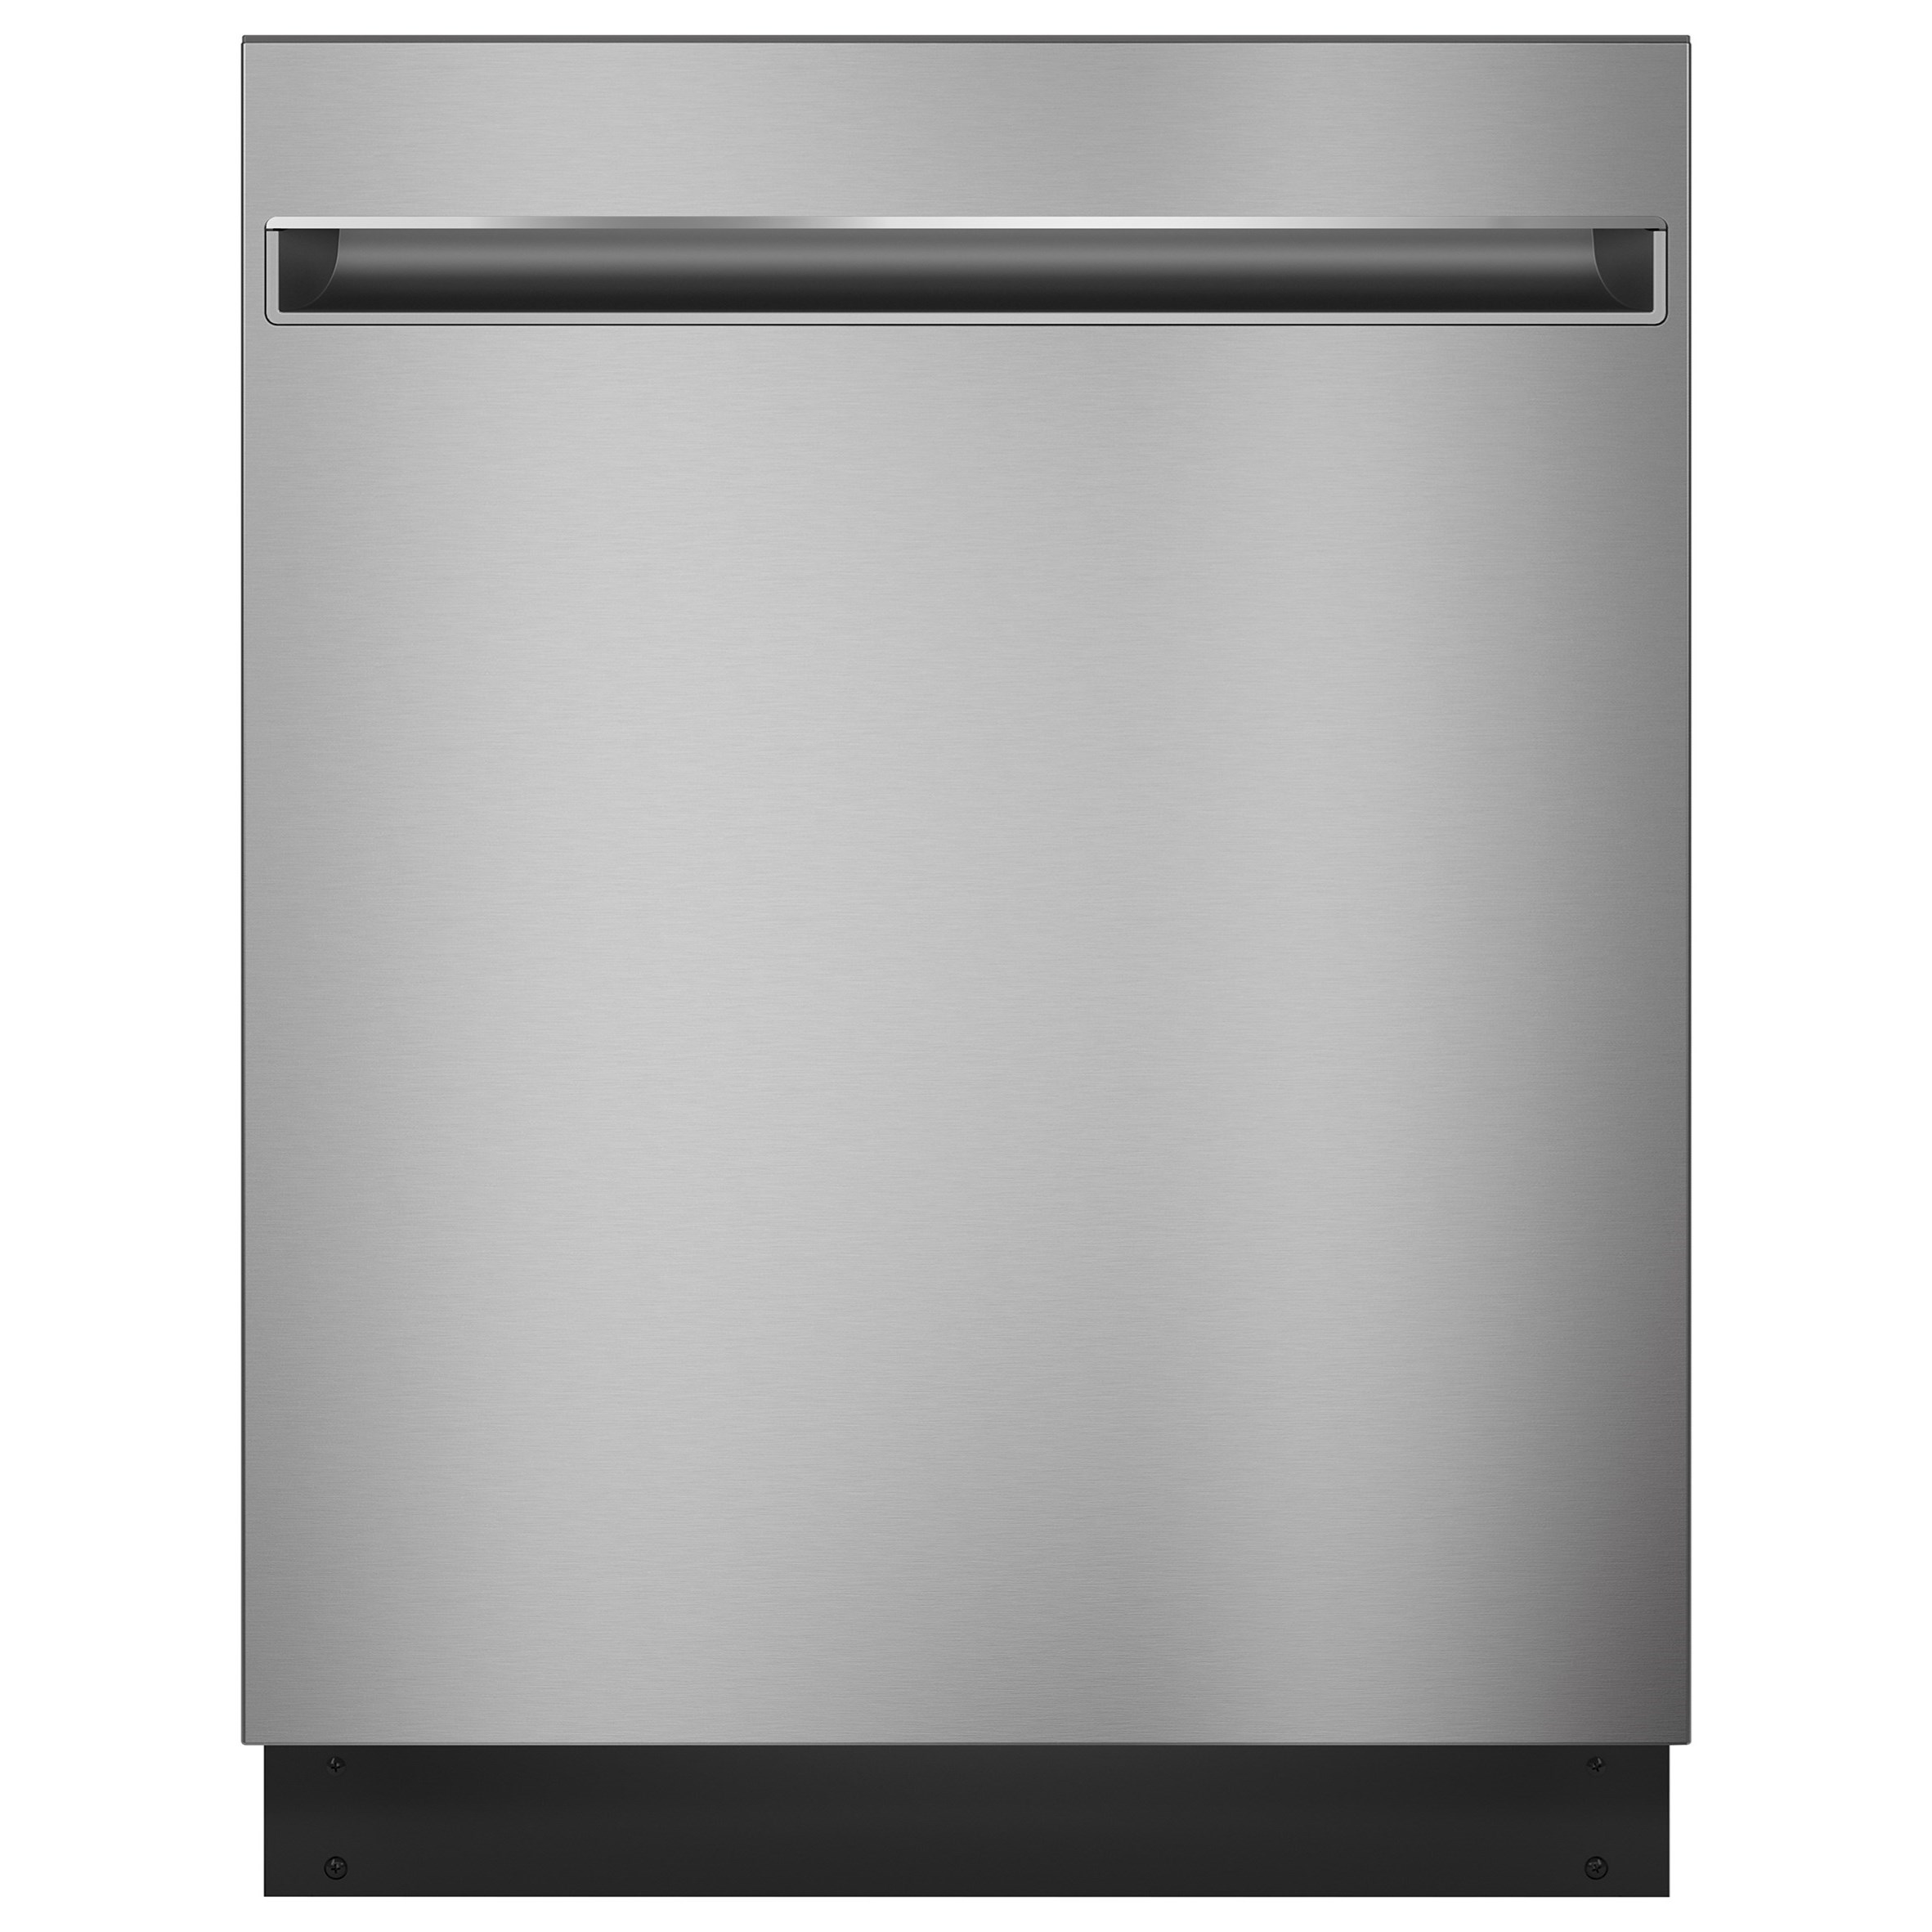 Dishwashers  GE® Built-In Dishwasher by GE Appliances at Furniture and ApplianceMart